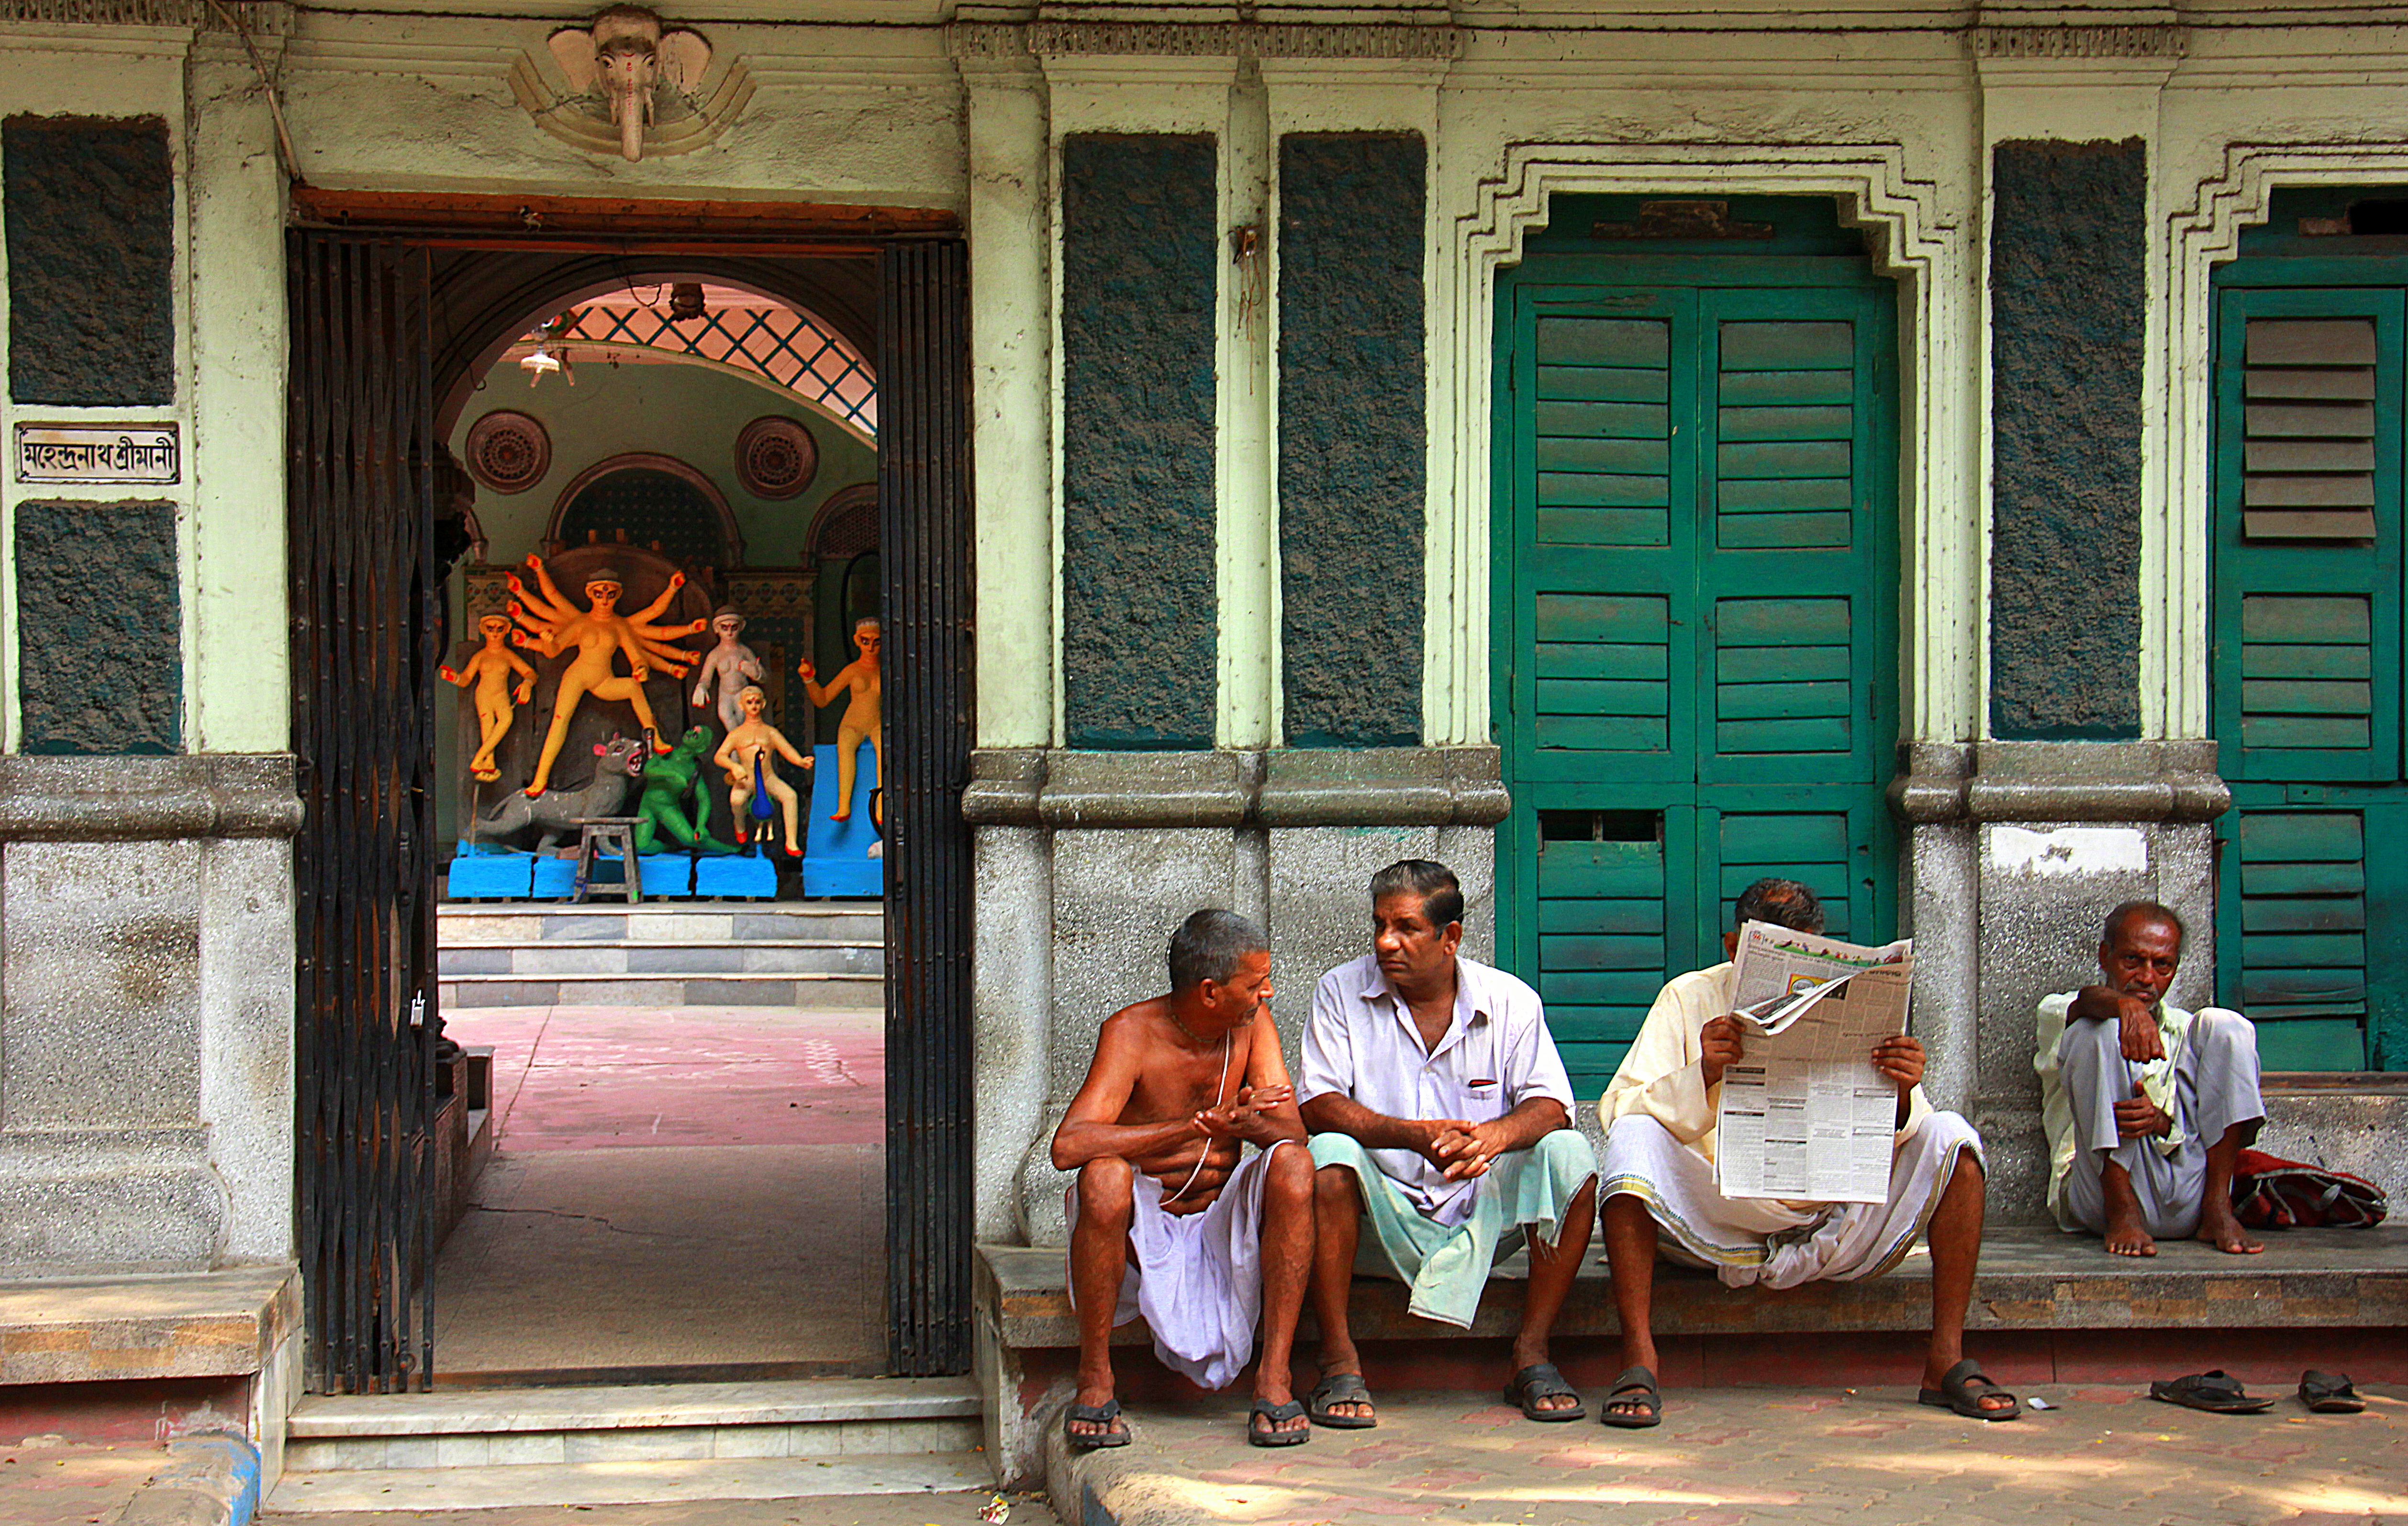 Calcutta is the cultural capital of India